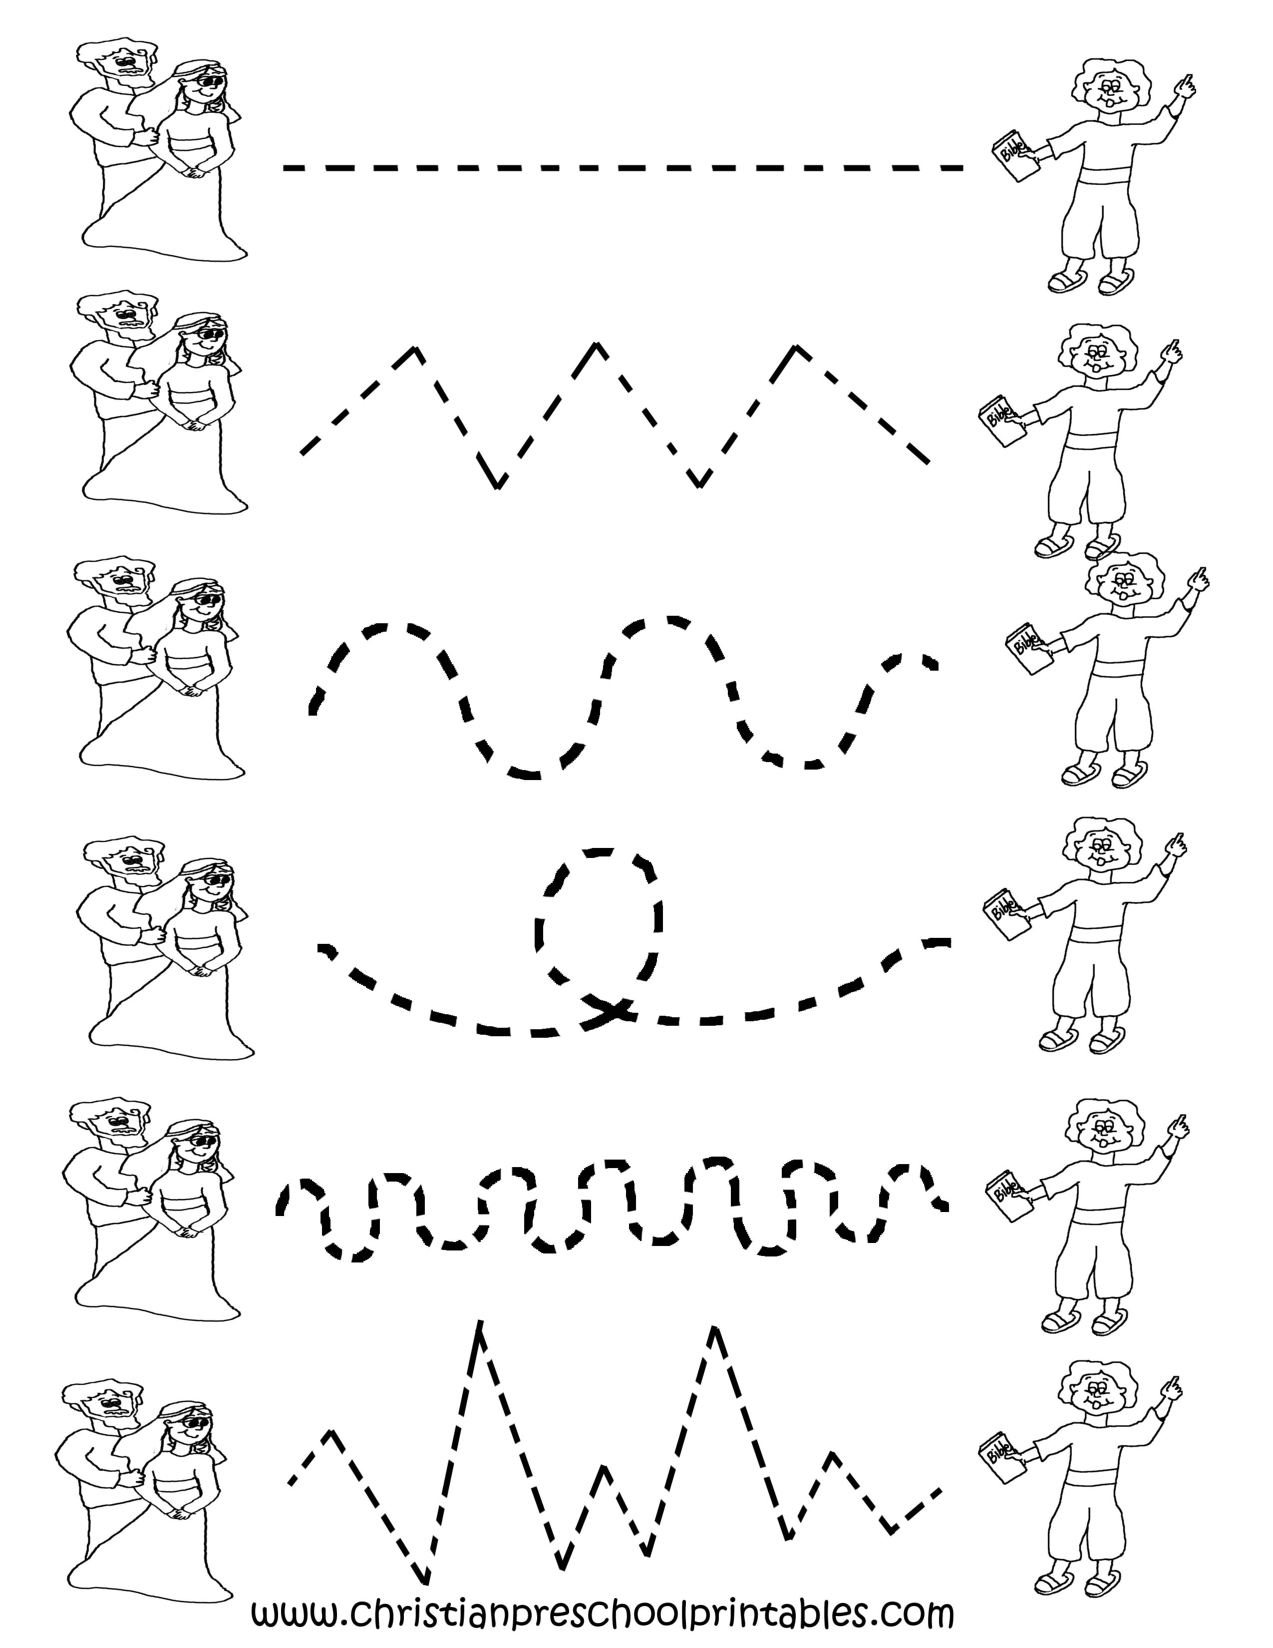 Image Detail For -Preschool Tracing Worksheets | Preschool Ideas | Free Printable Preschool Worksheets Tracing Lines